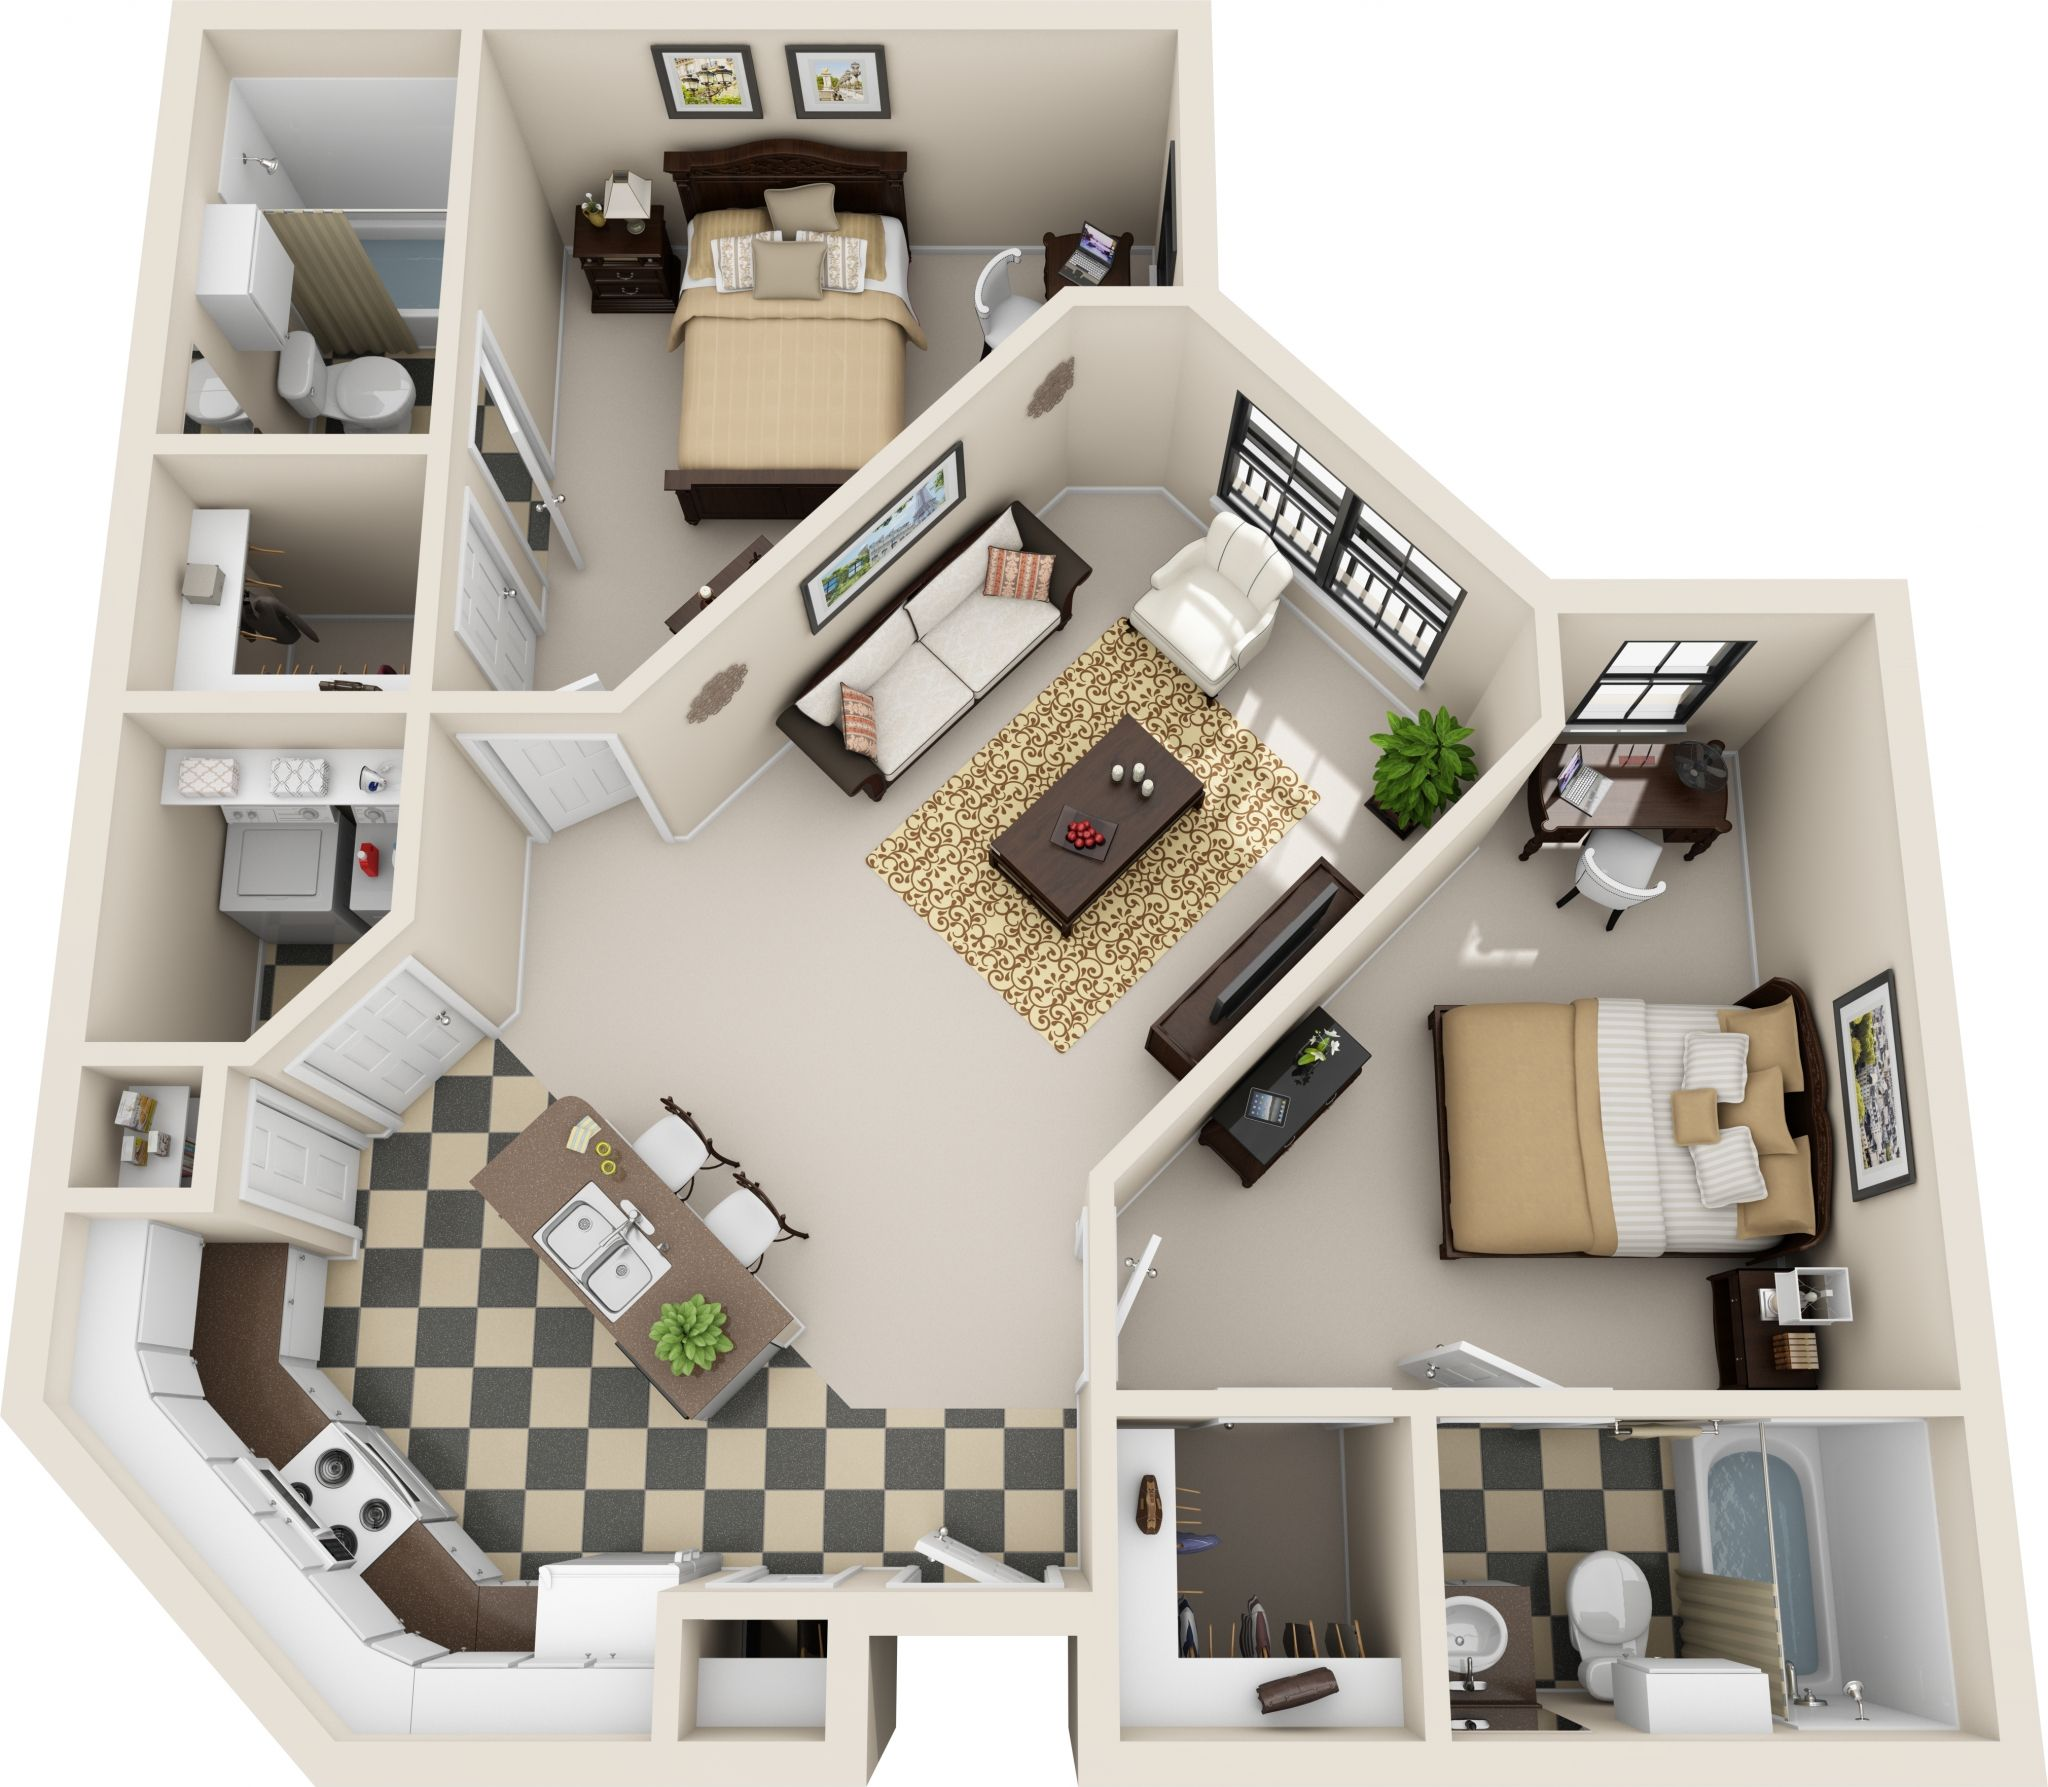 Resultado De Imagen Para 2 Bedroom 2 Bath Apartments Sims House Plans Sims 4 House Plans Sims 4 House Design